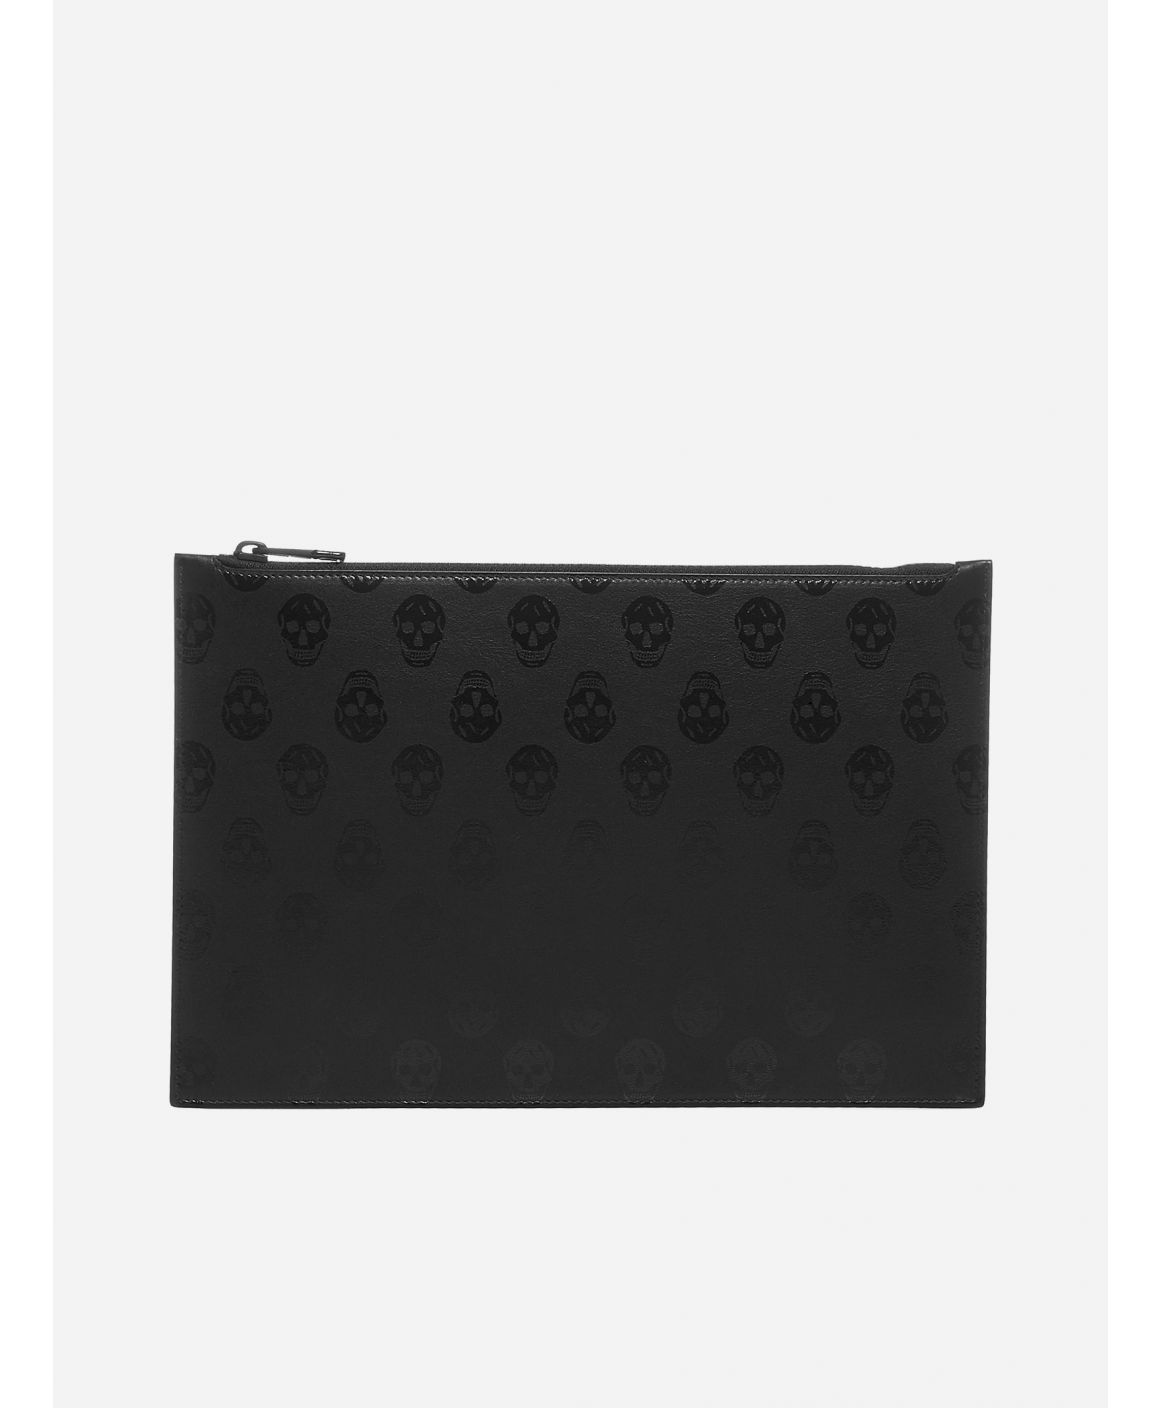 Skull print leather clutch